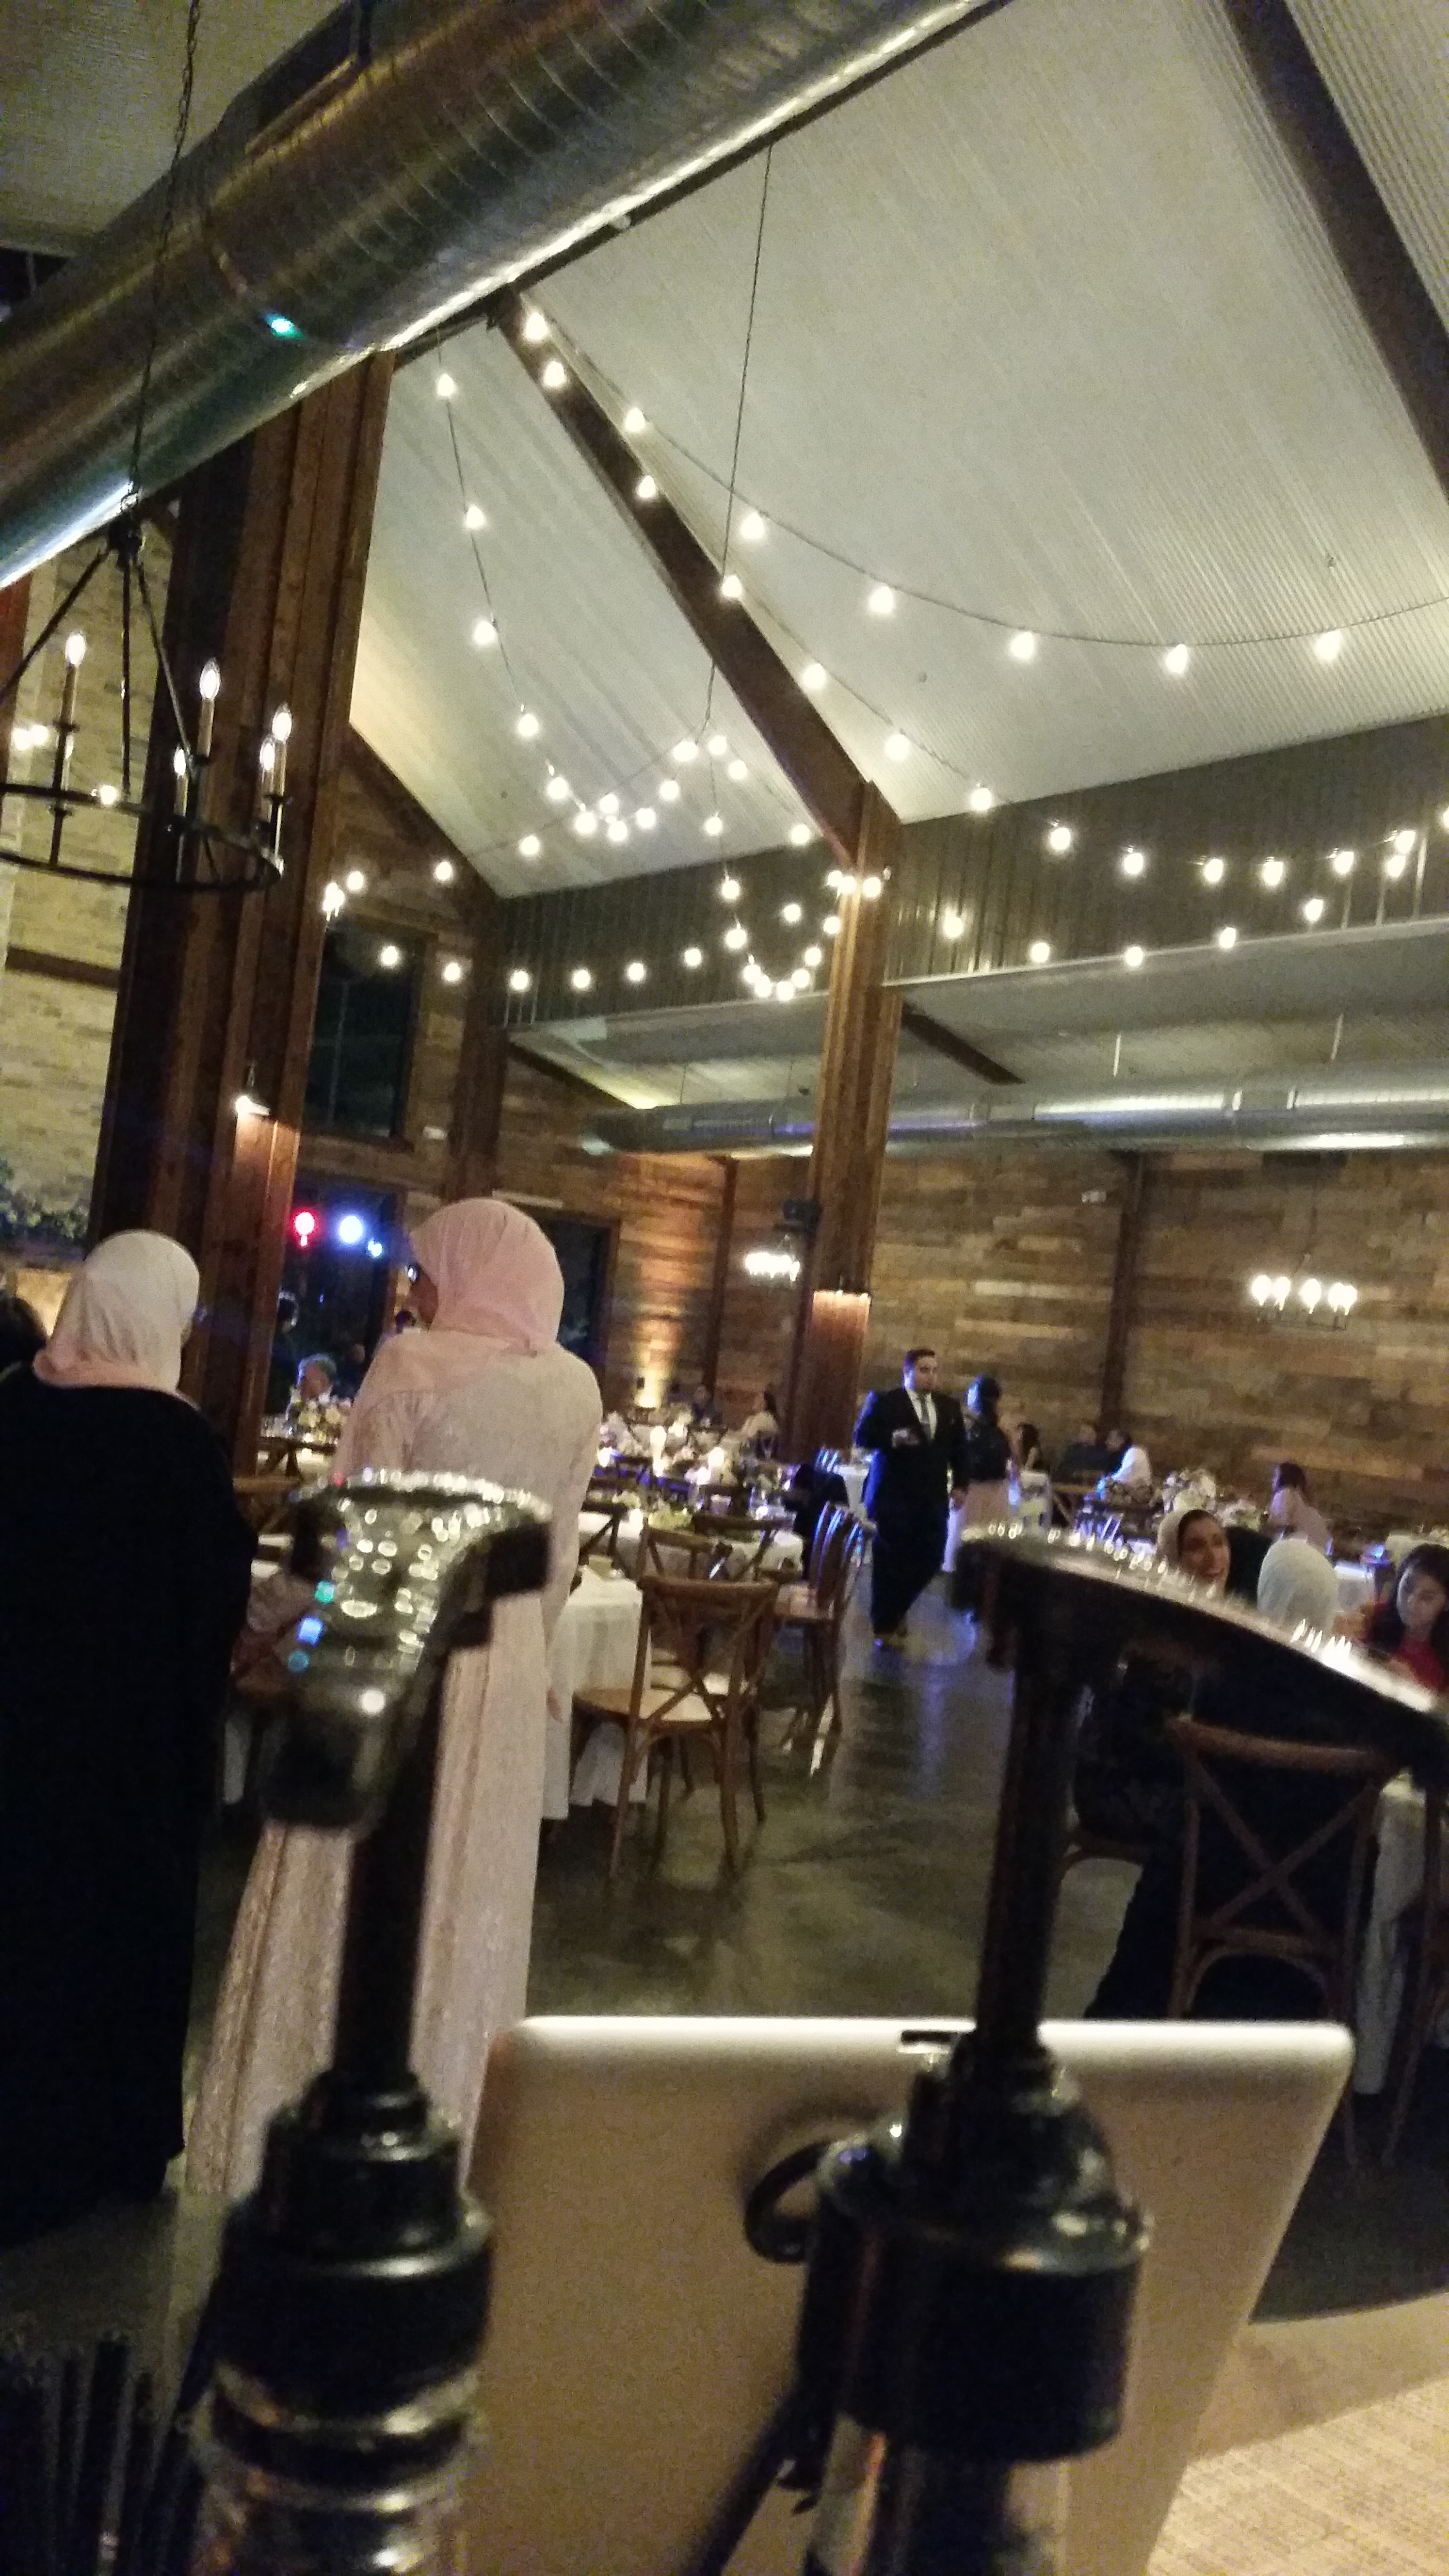 112/31/16 Ranch Wedding - Lovely Venue